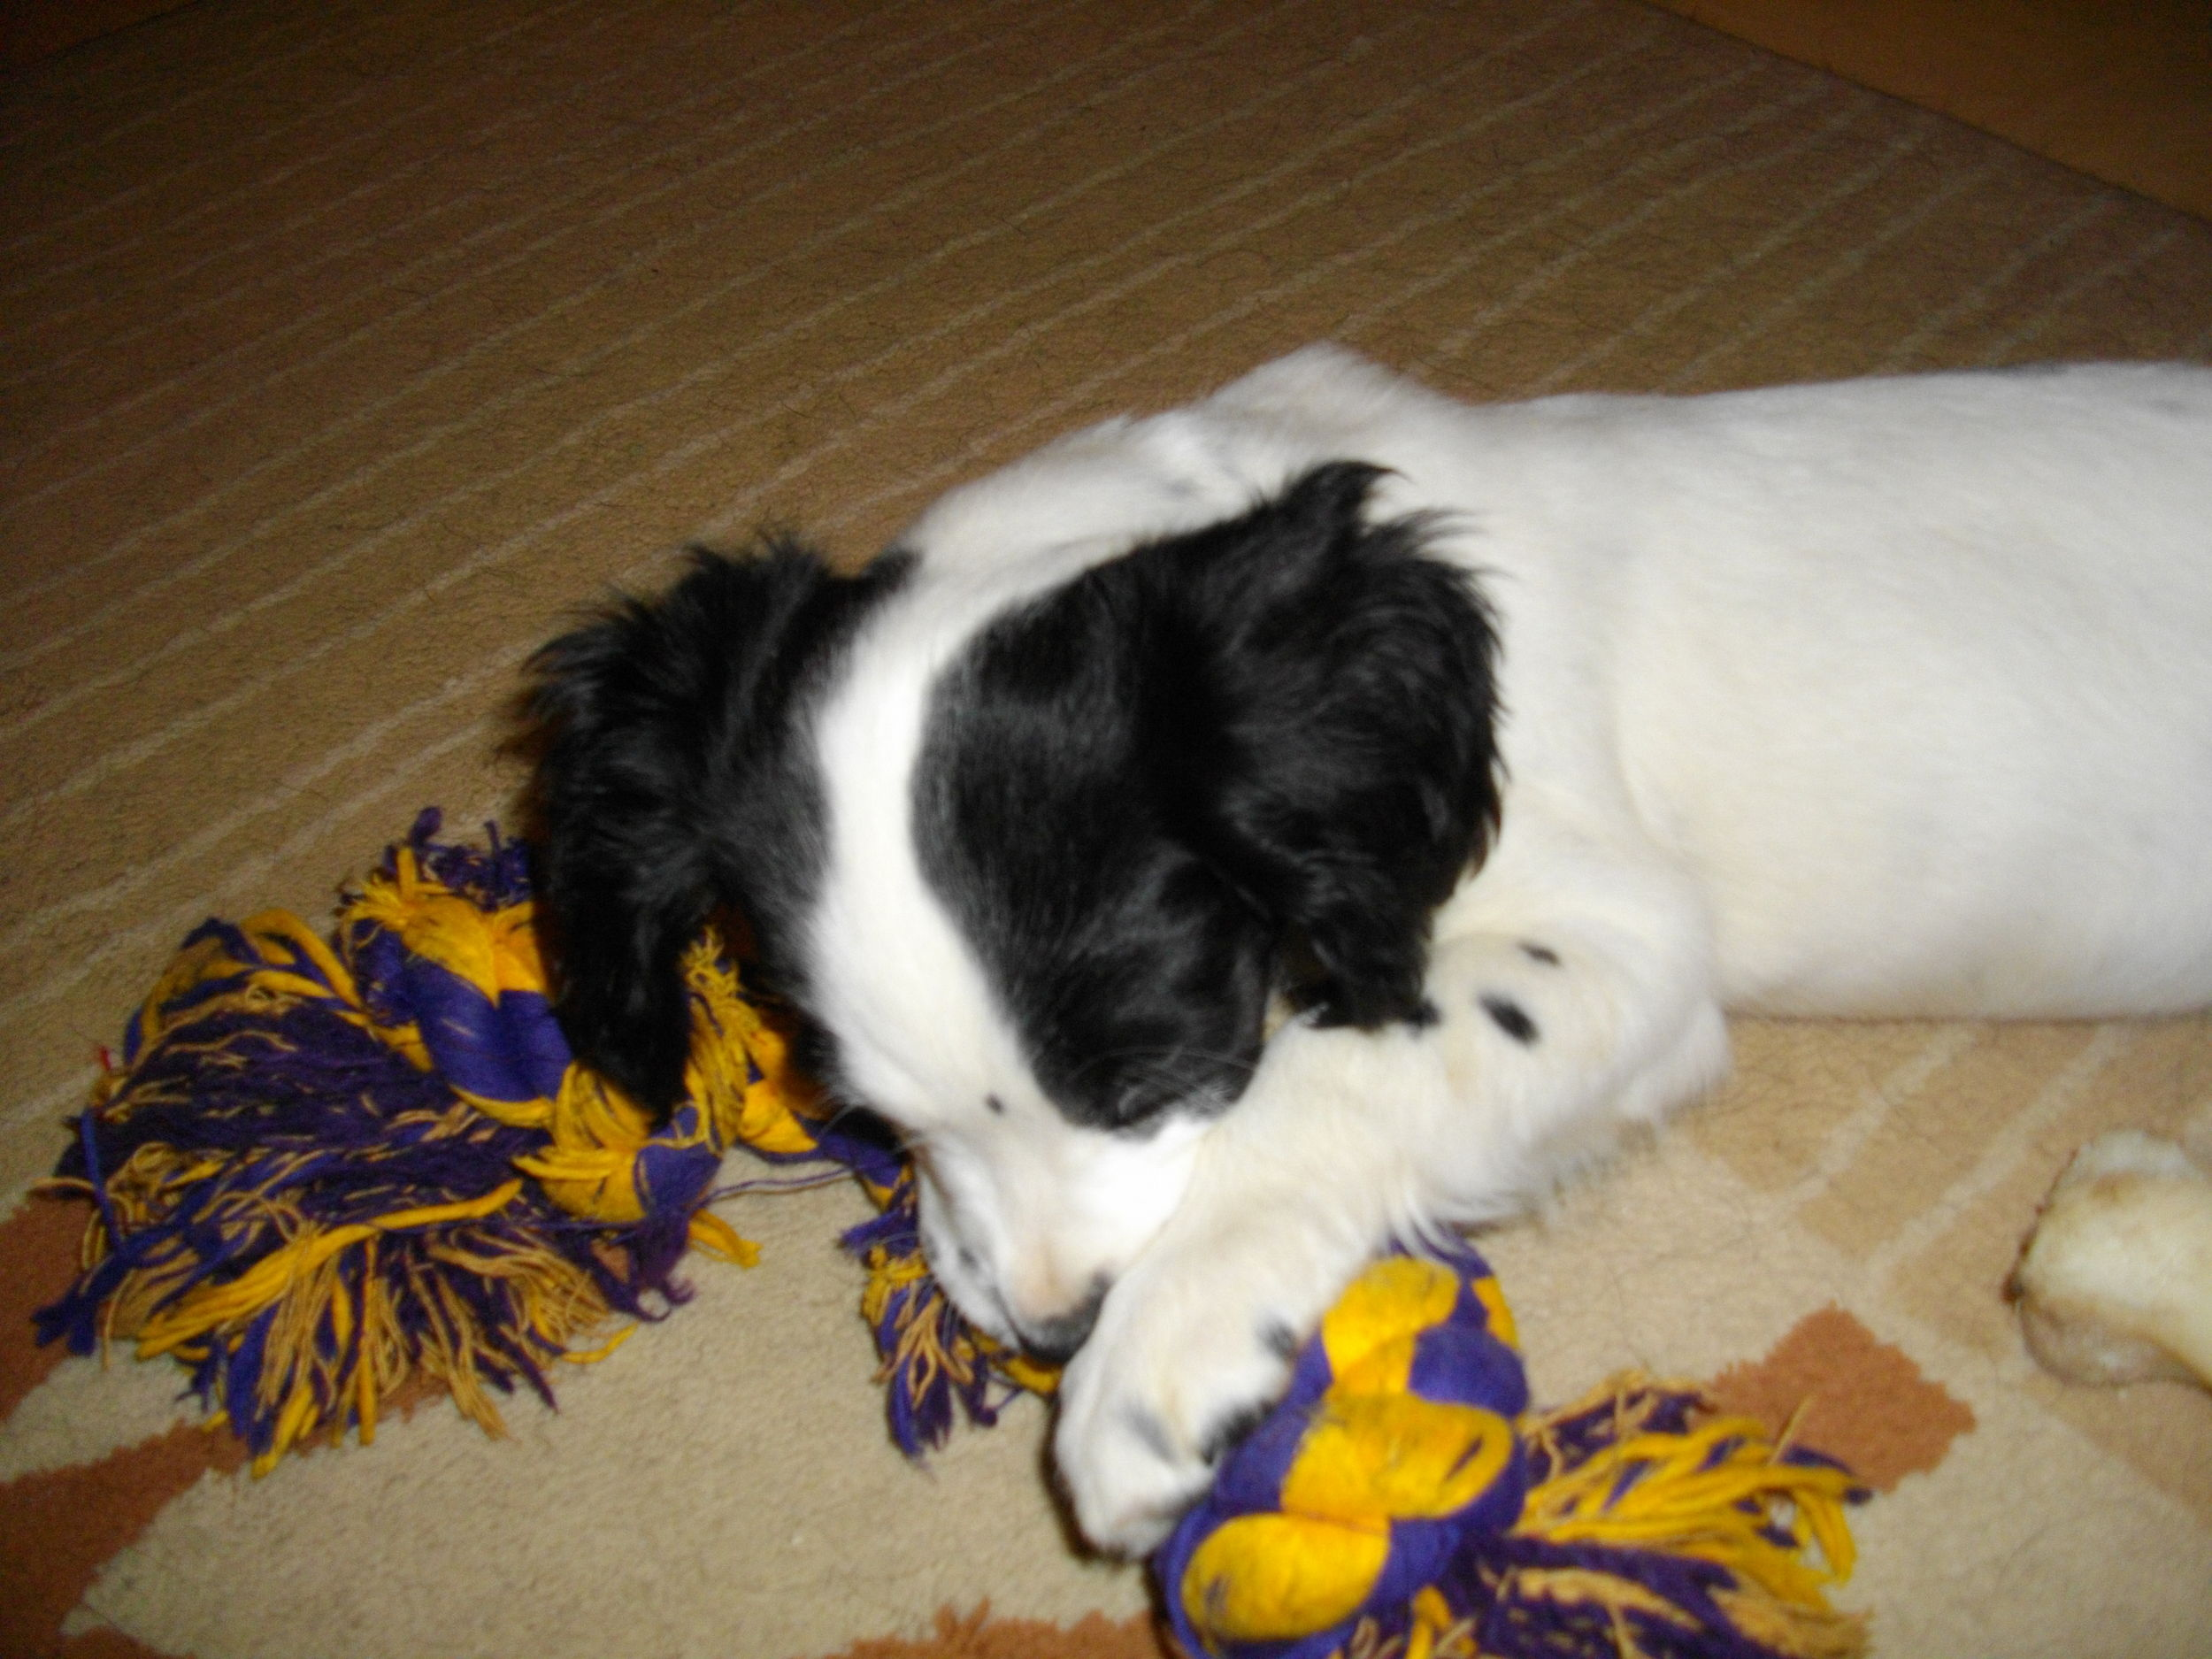 DOGS_049